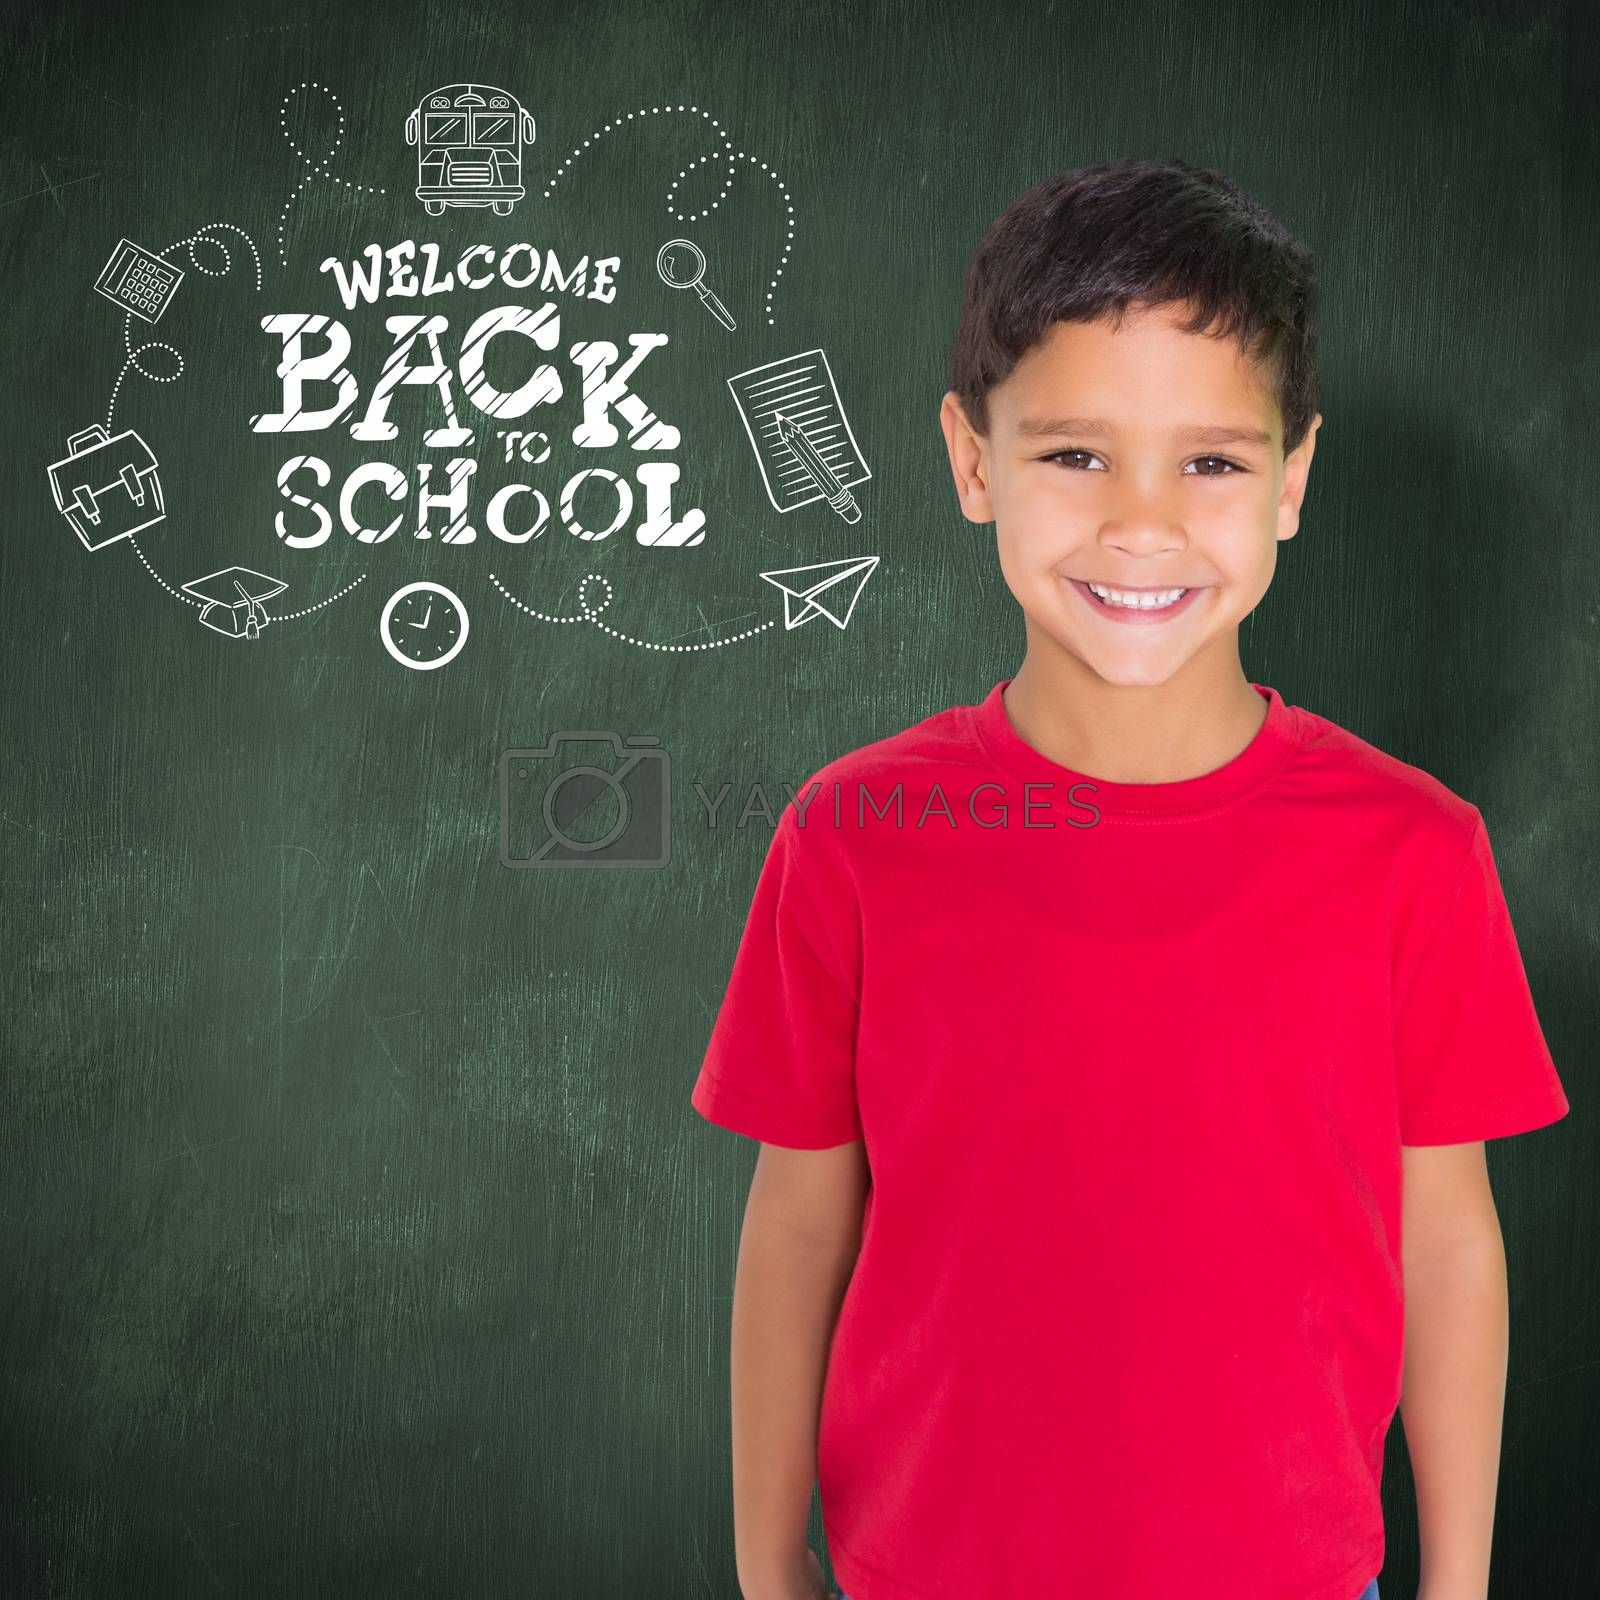 Cute boy smiling at camera against green chalkboard